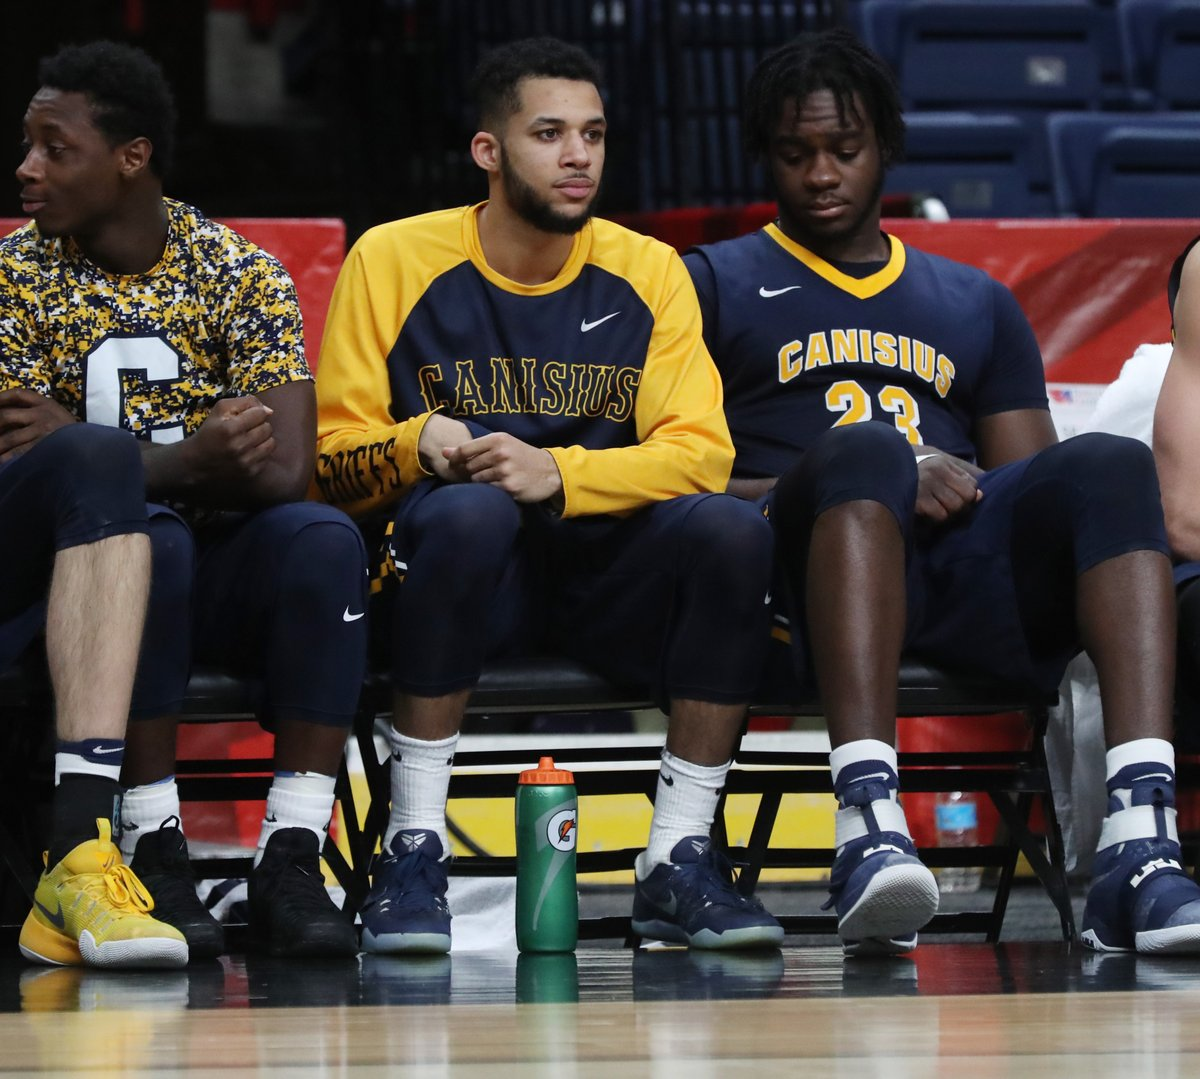 Canisius' Kassius Robertson sits on the bench during the second half of Friday's loss to St. Peter's. (James P. McCoy/Buffalo News)